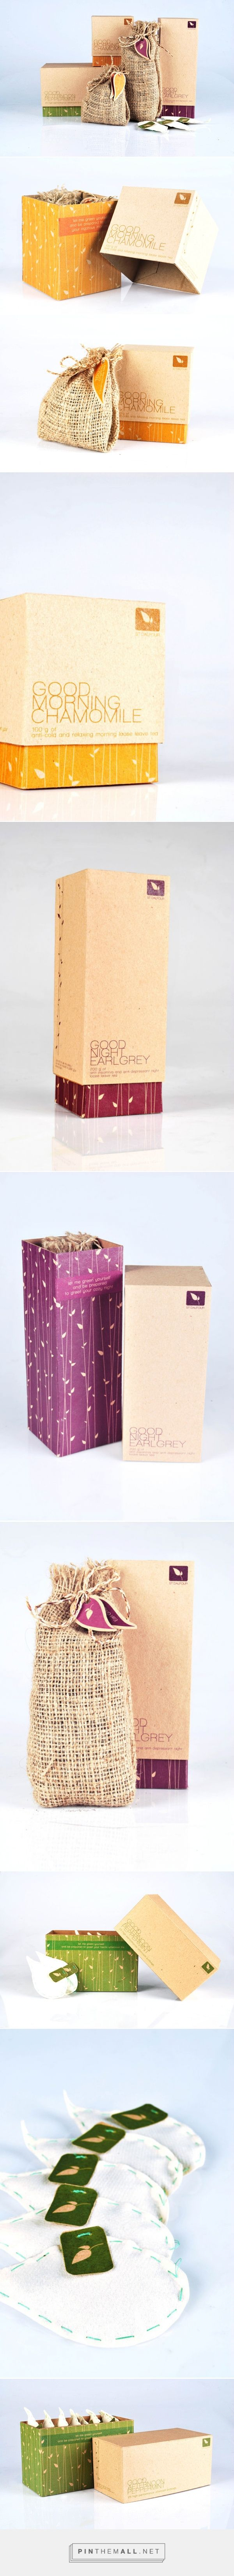 Natural Packaging for Tea by Risco Tiofani on Behance curated by Packaging Diva PD. Too bad this lovely tea packaging is just a project.